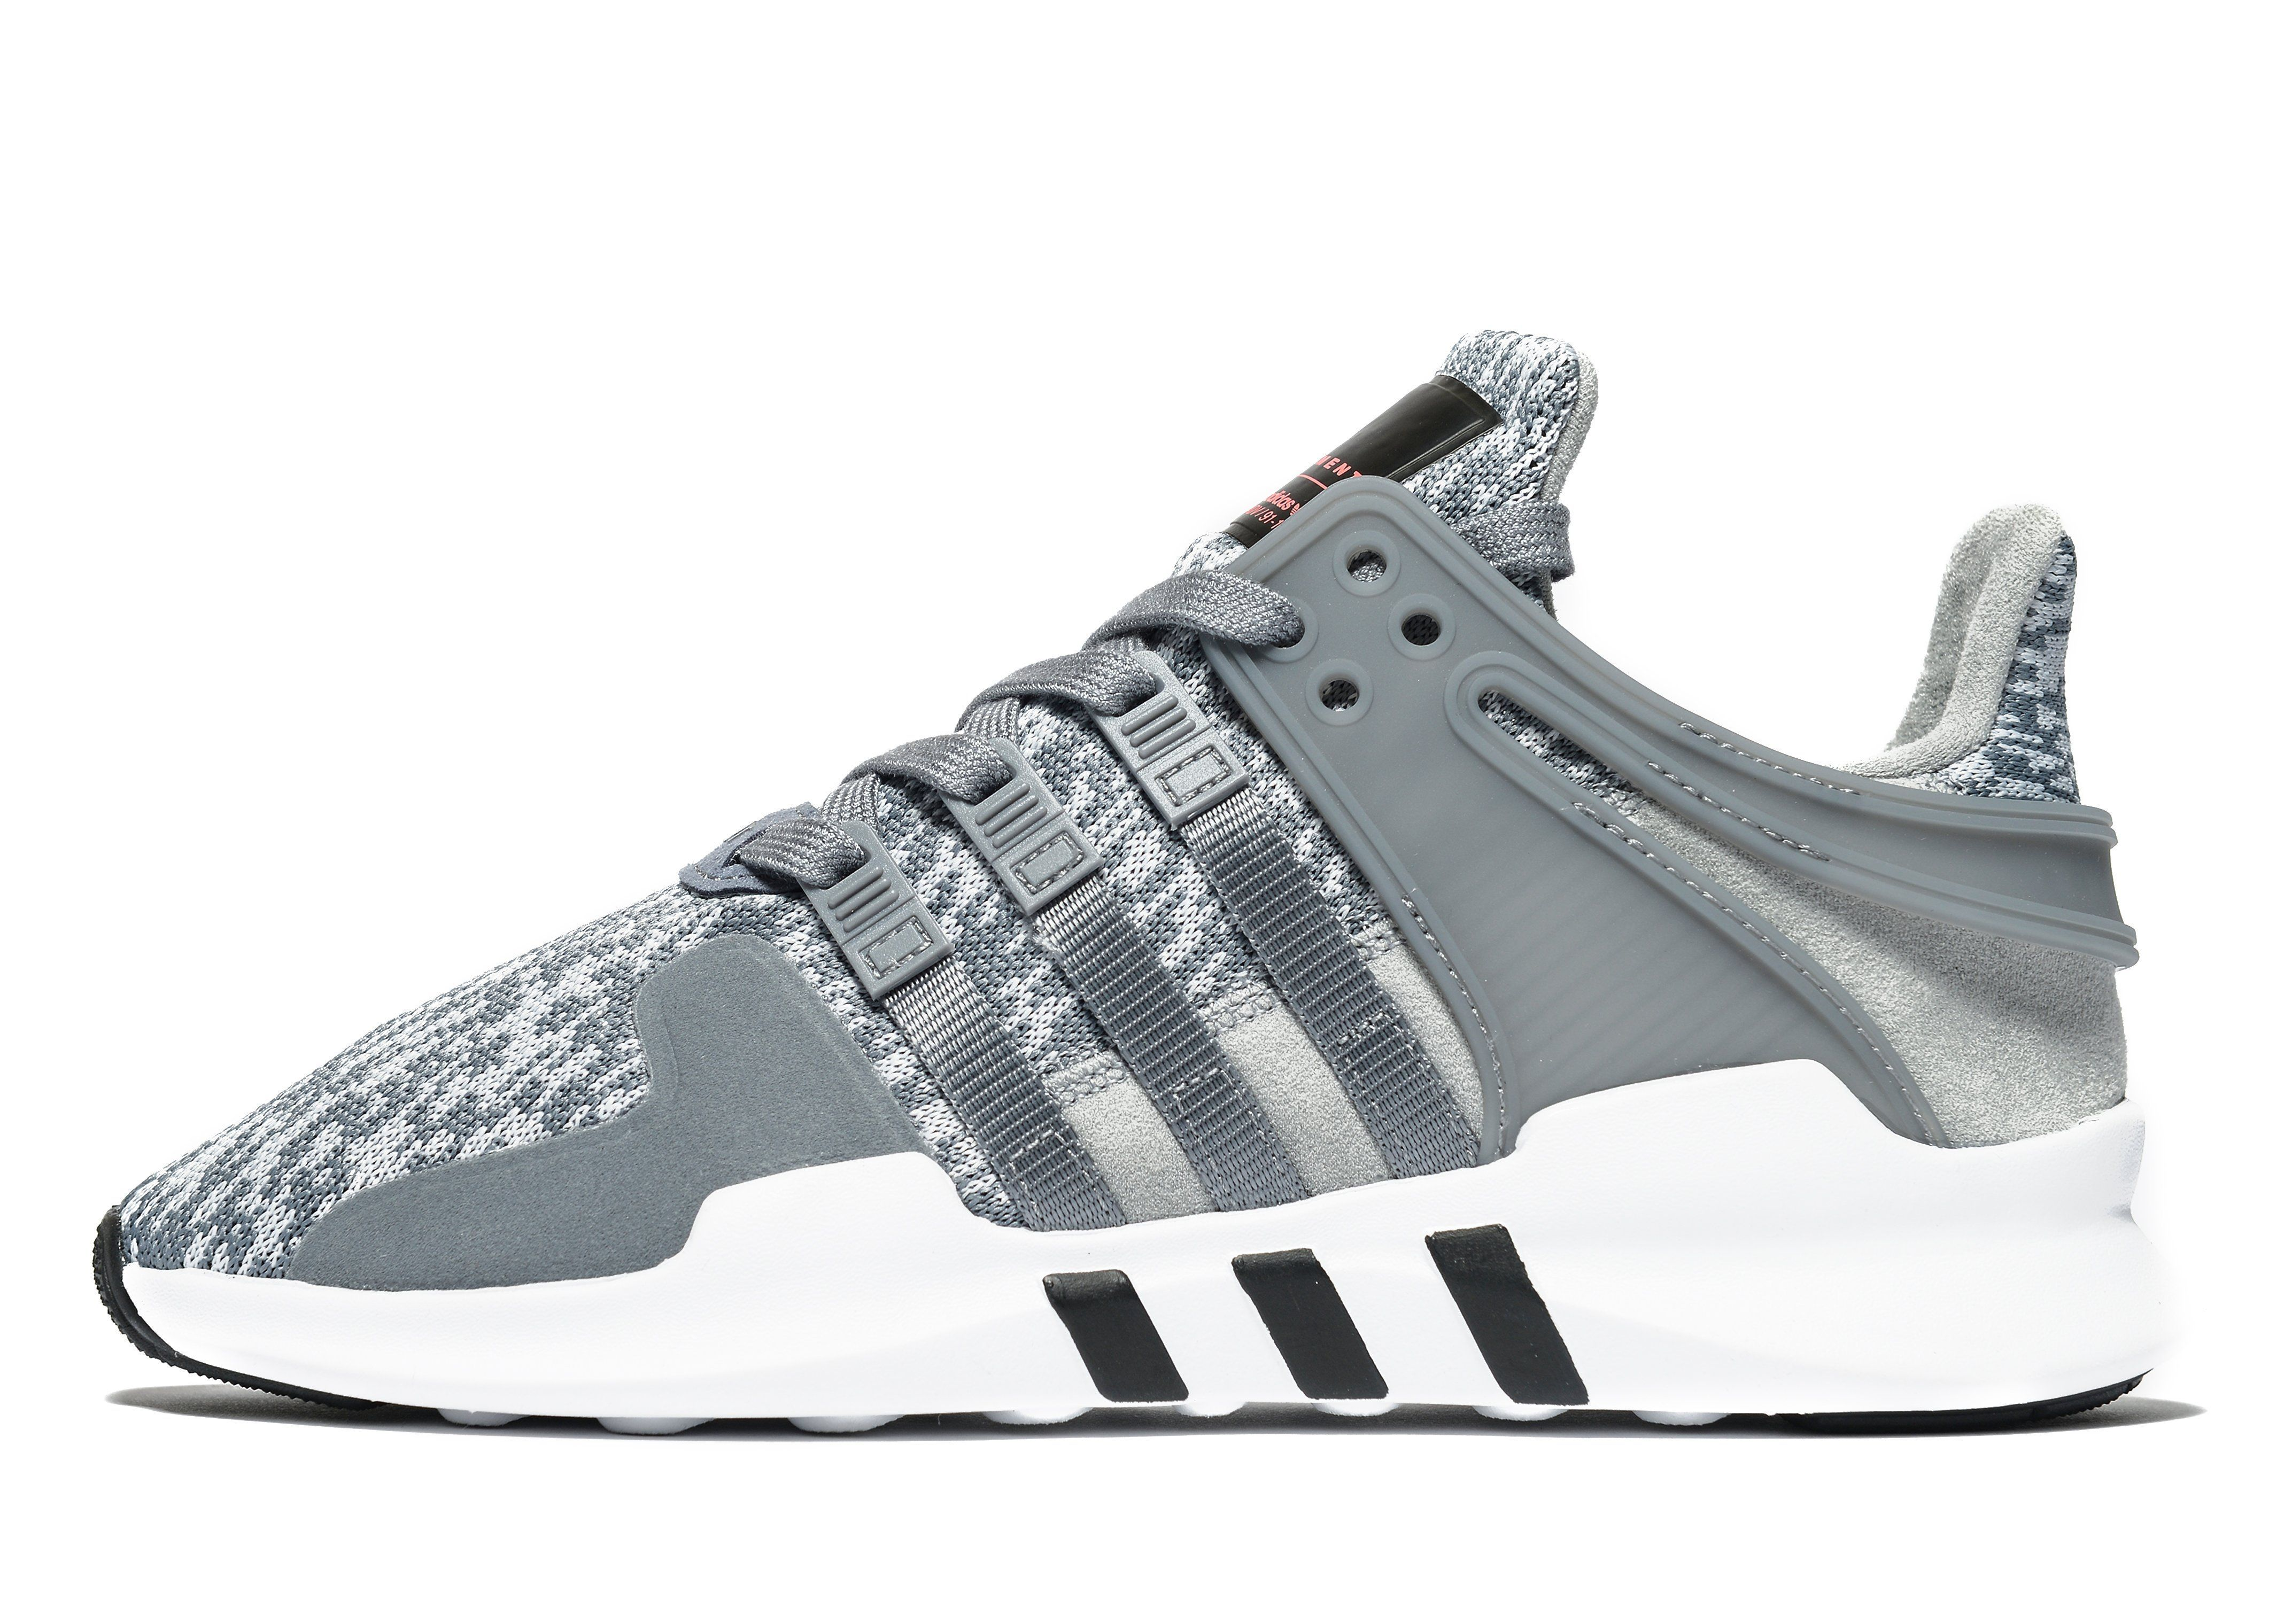 EQT Lifestyle 30 Cheap Adidas US WinningHorsePicks